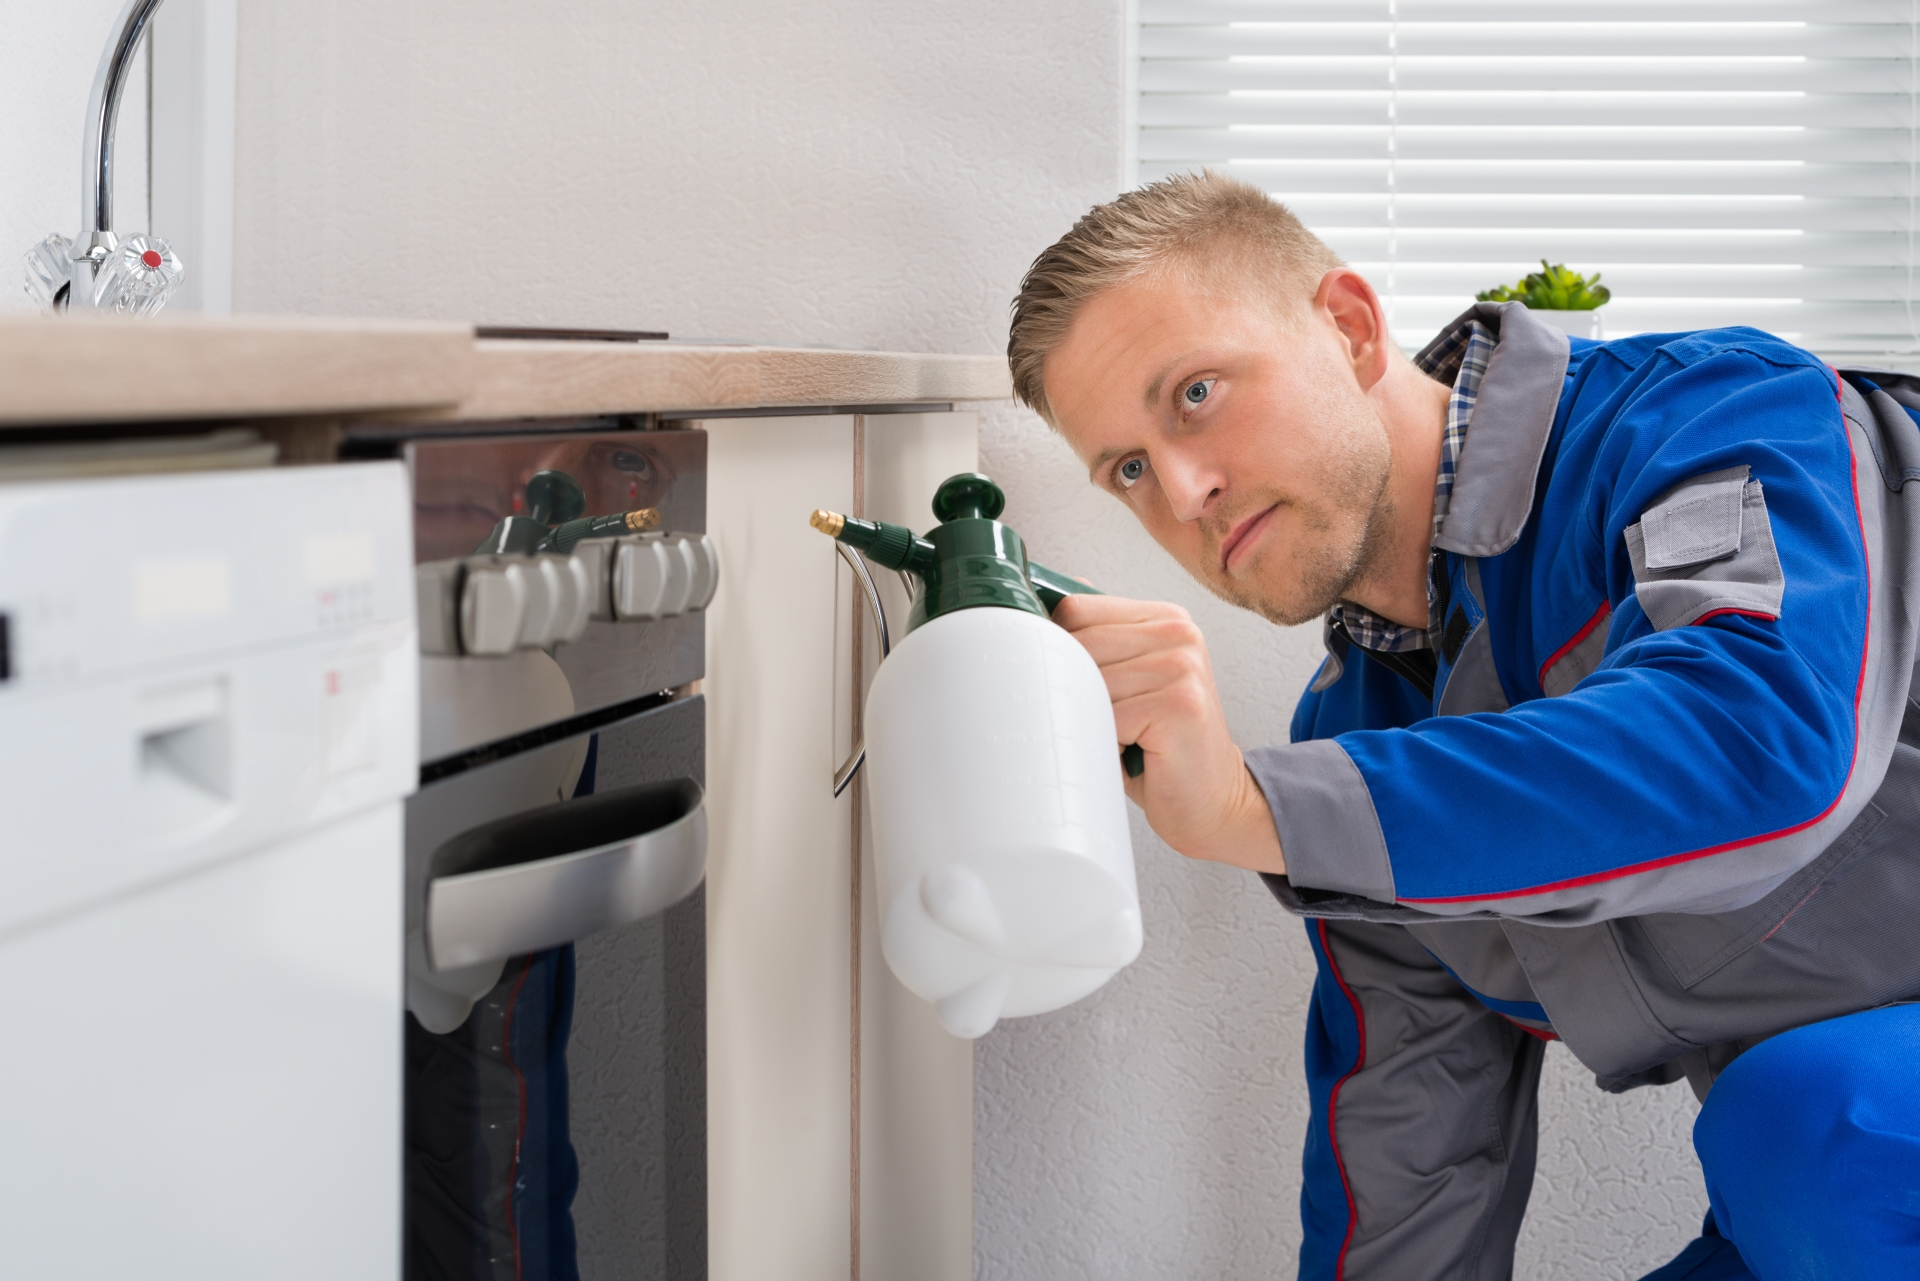 Pest Inspection, Pest Control in Holloway, N7 . Call Now 020 8166 9746